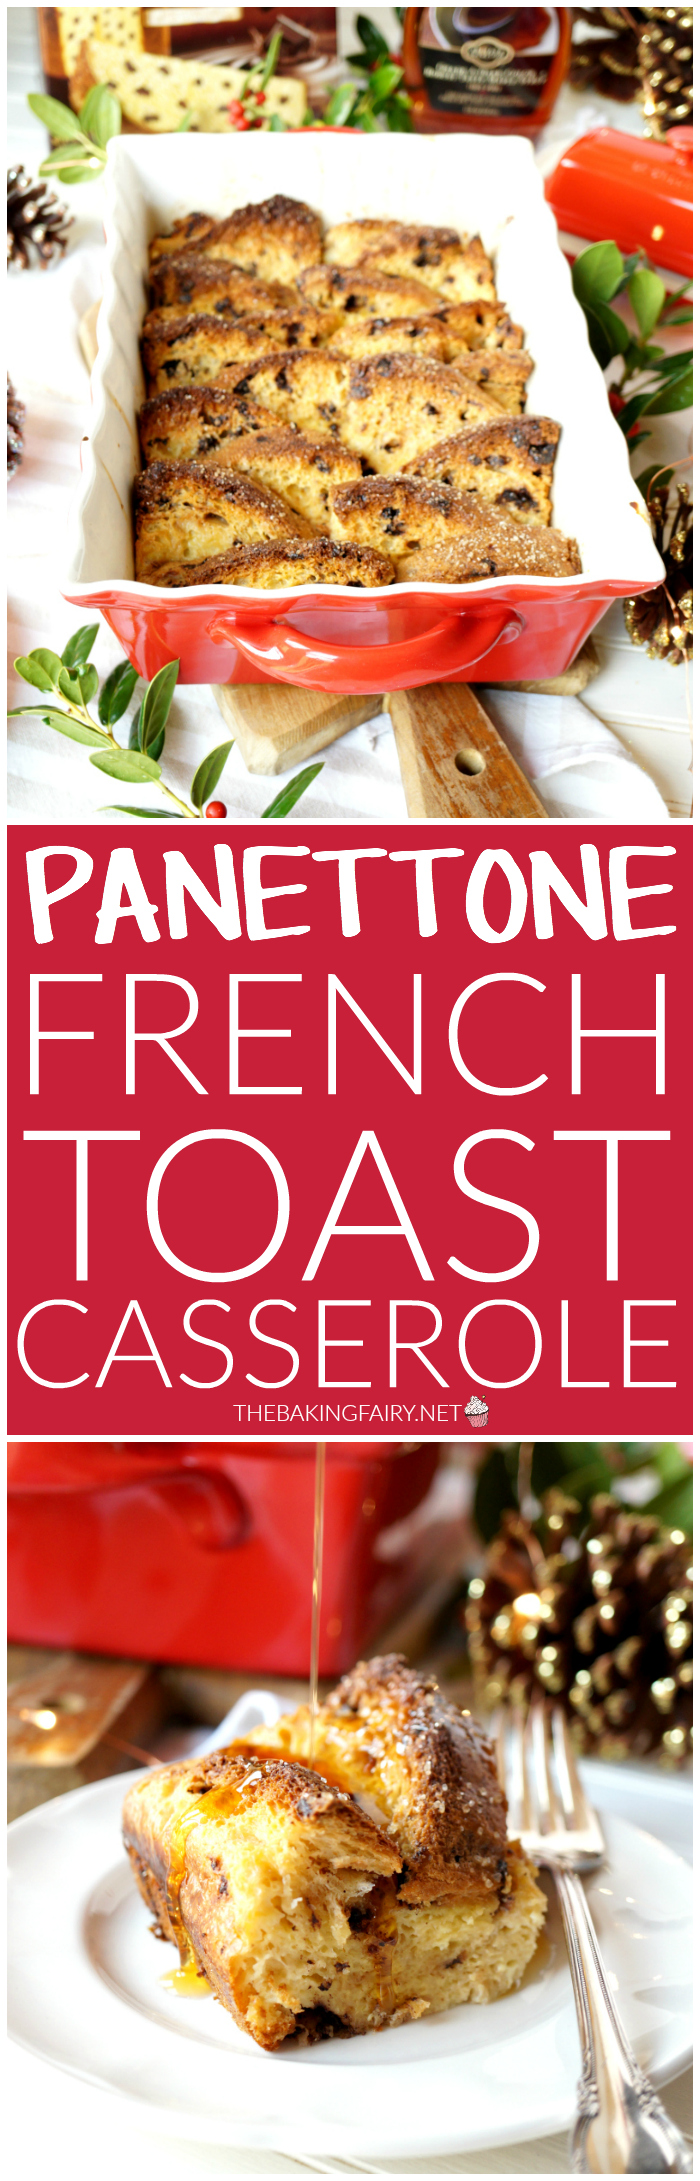 panettone french toast casserole | The Baking Fairy